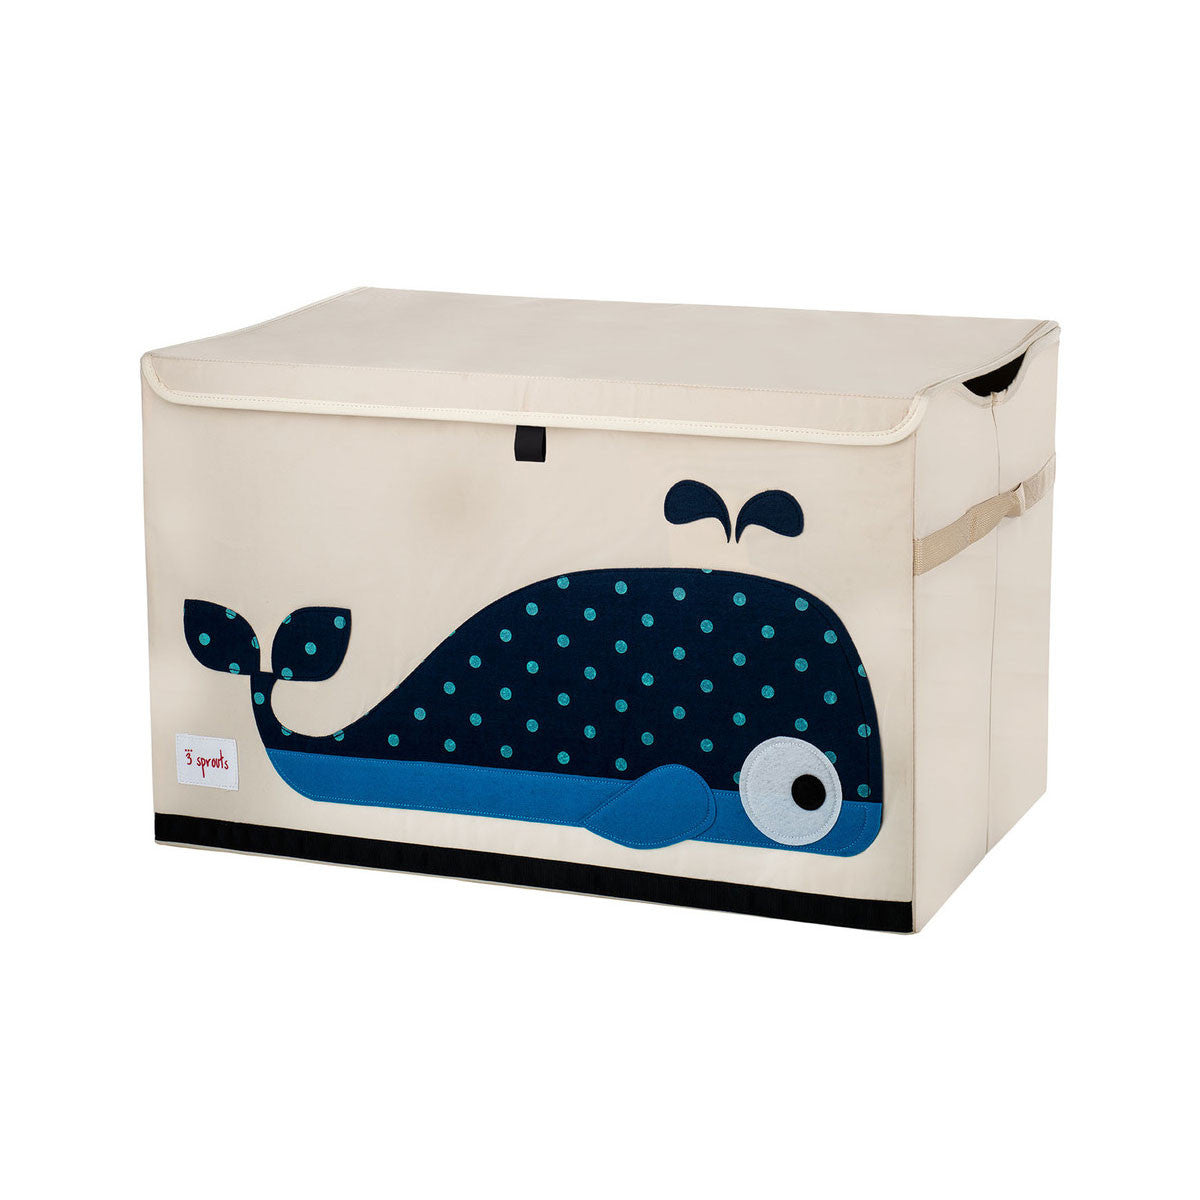 3 Sprouts Toy Chest Blue Whale - DarlingBaby